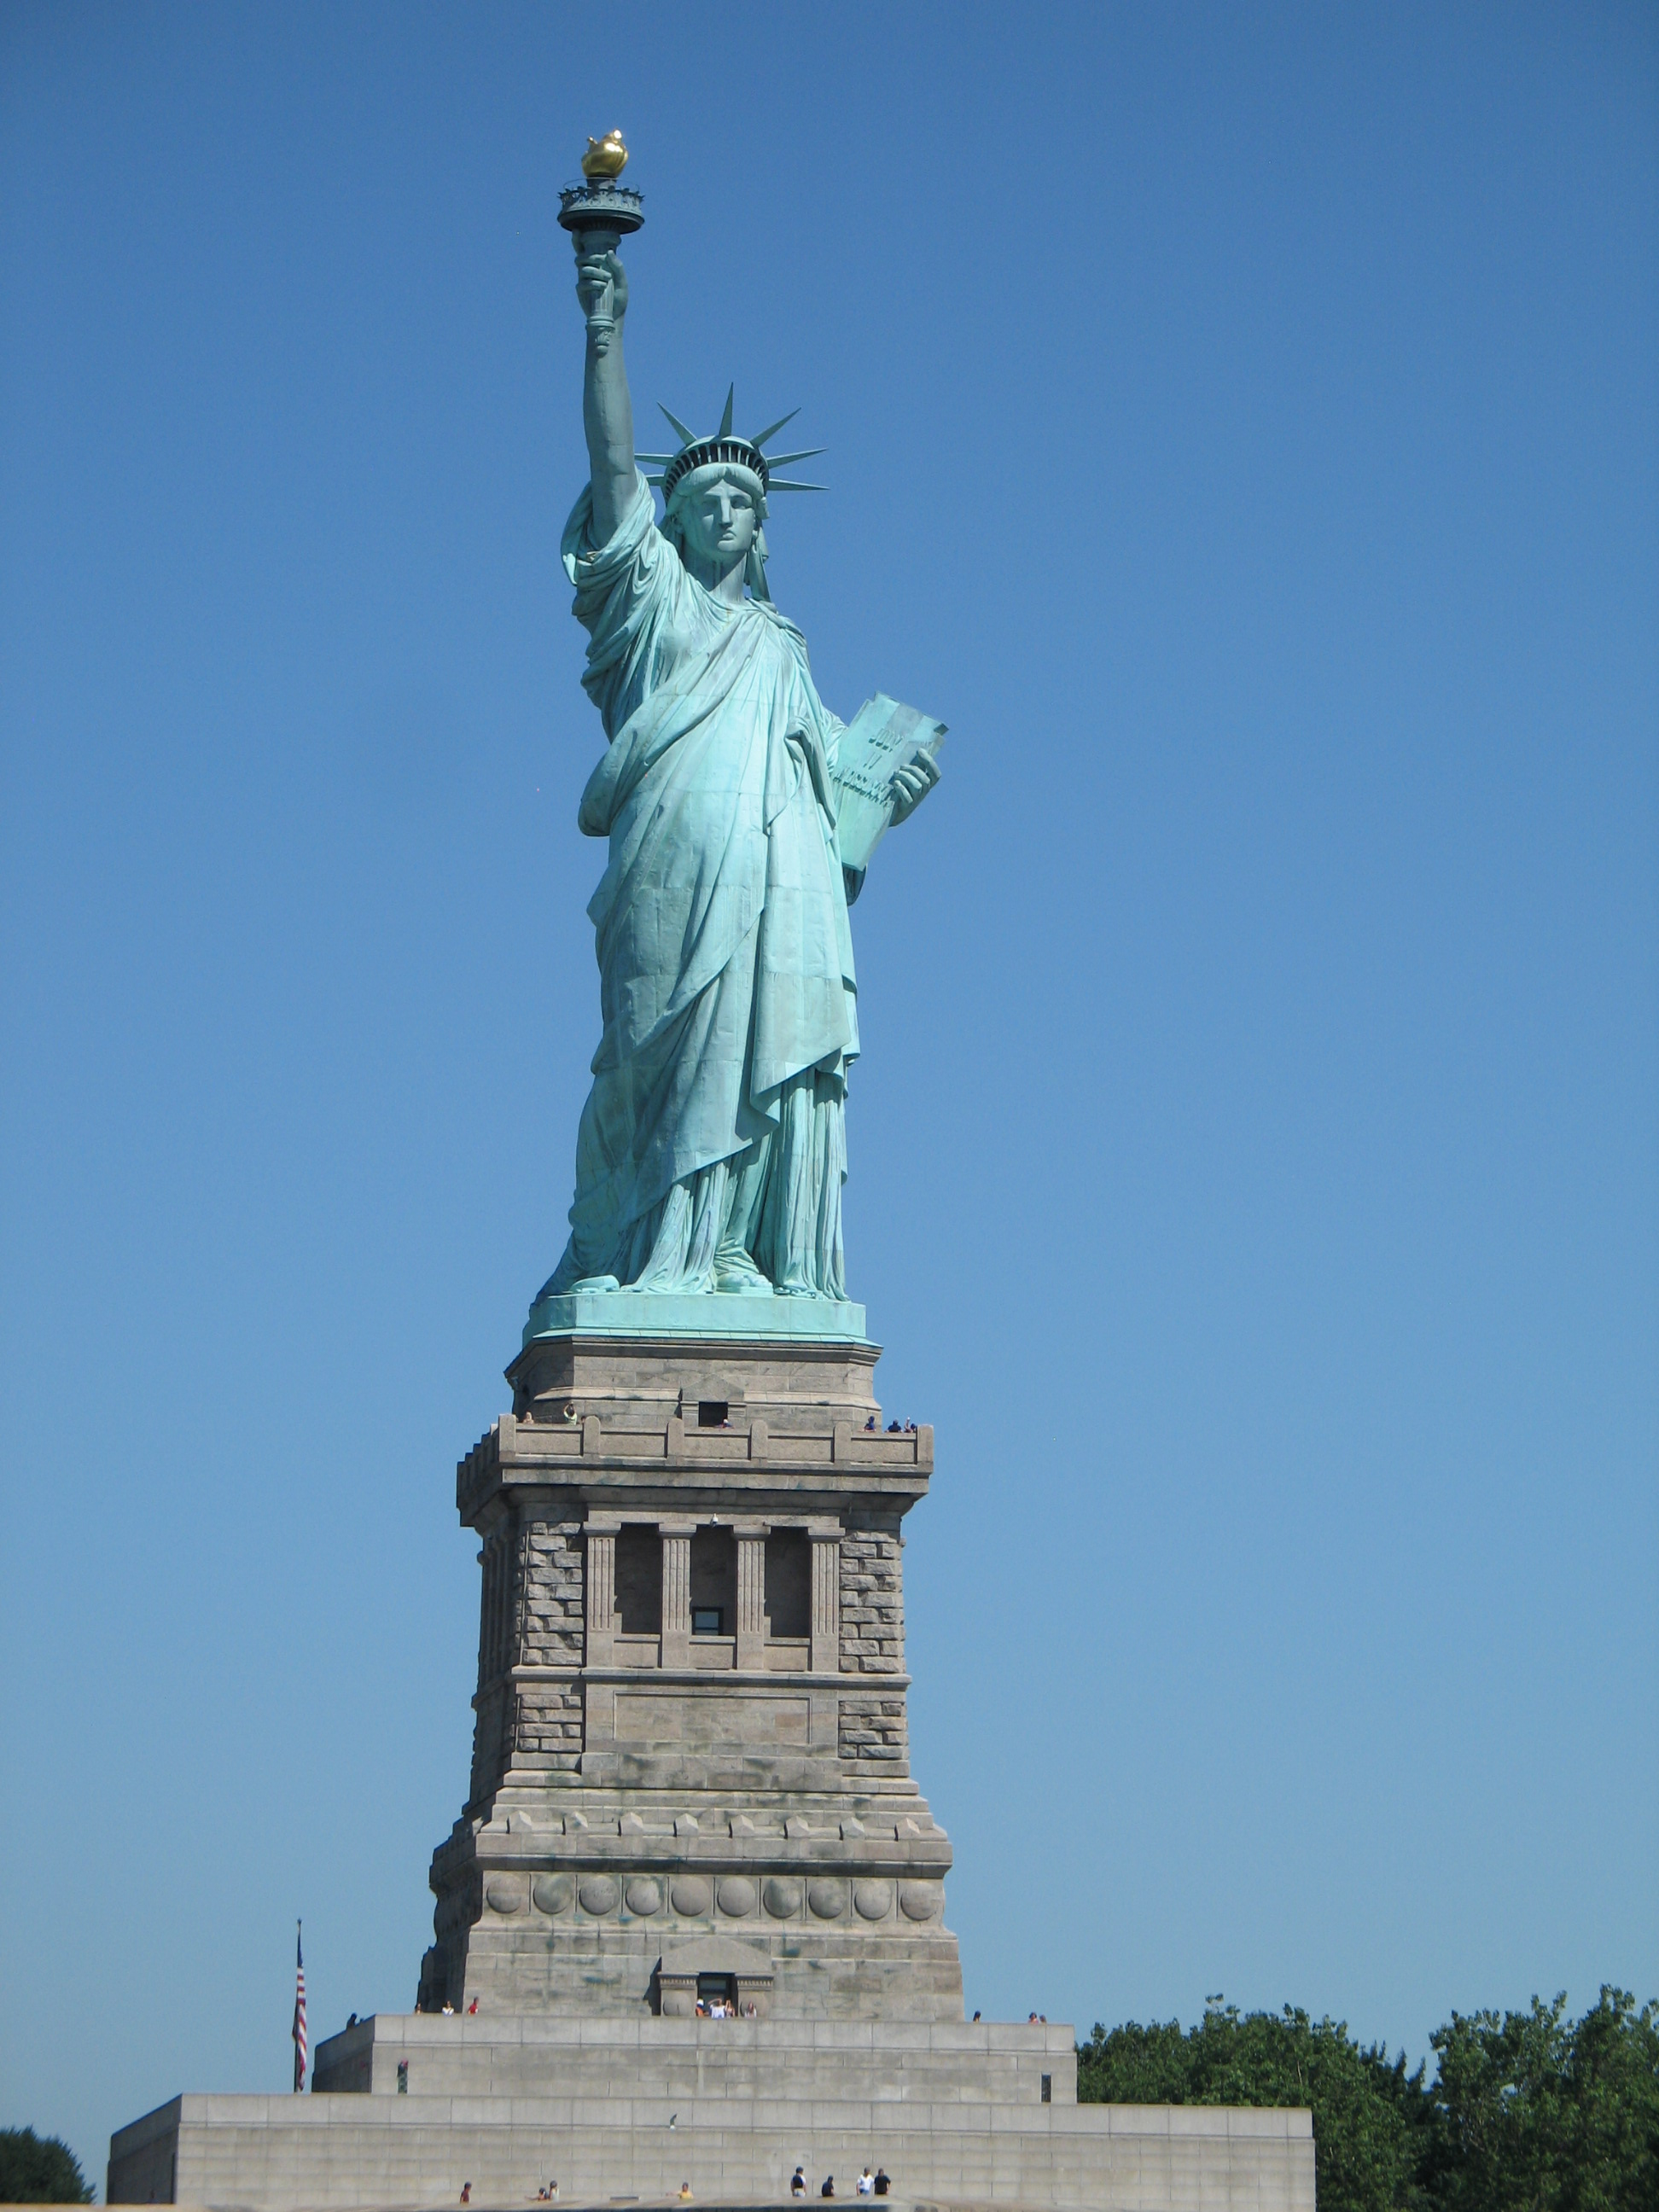 http://upload.wikimedia.org/wikipedia/commons/4/42/US_-_Liberty_Island_-_05.JPG